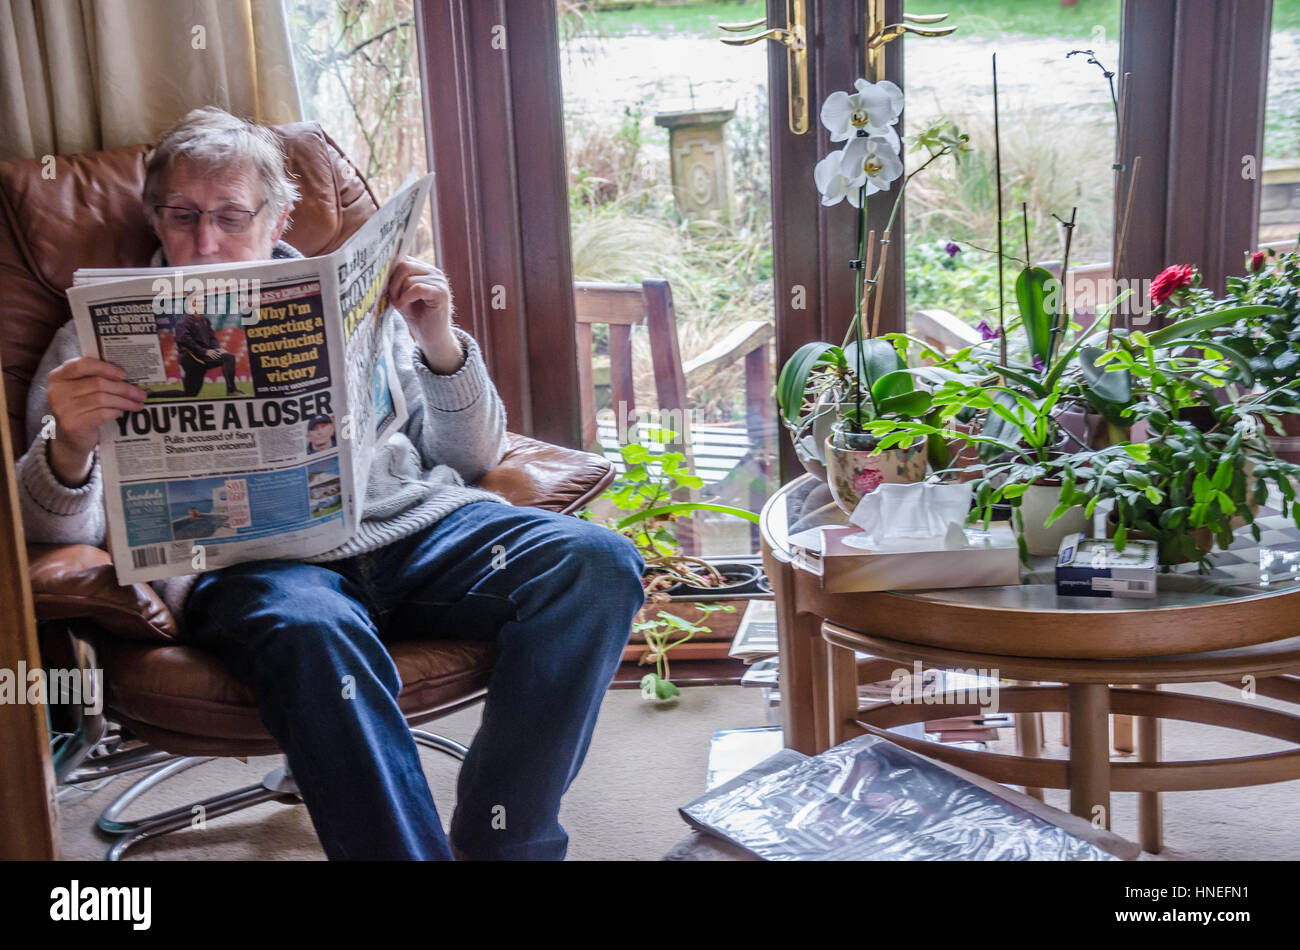 a-man-sits-in-a-comfy-armchair-reading-the-daily-mail-newspaper-HNEFN1.jpg